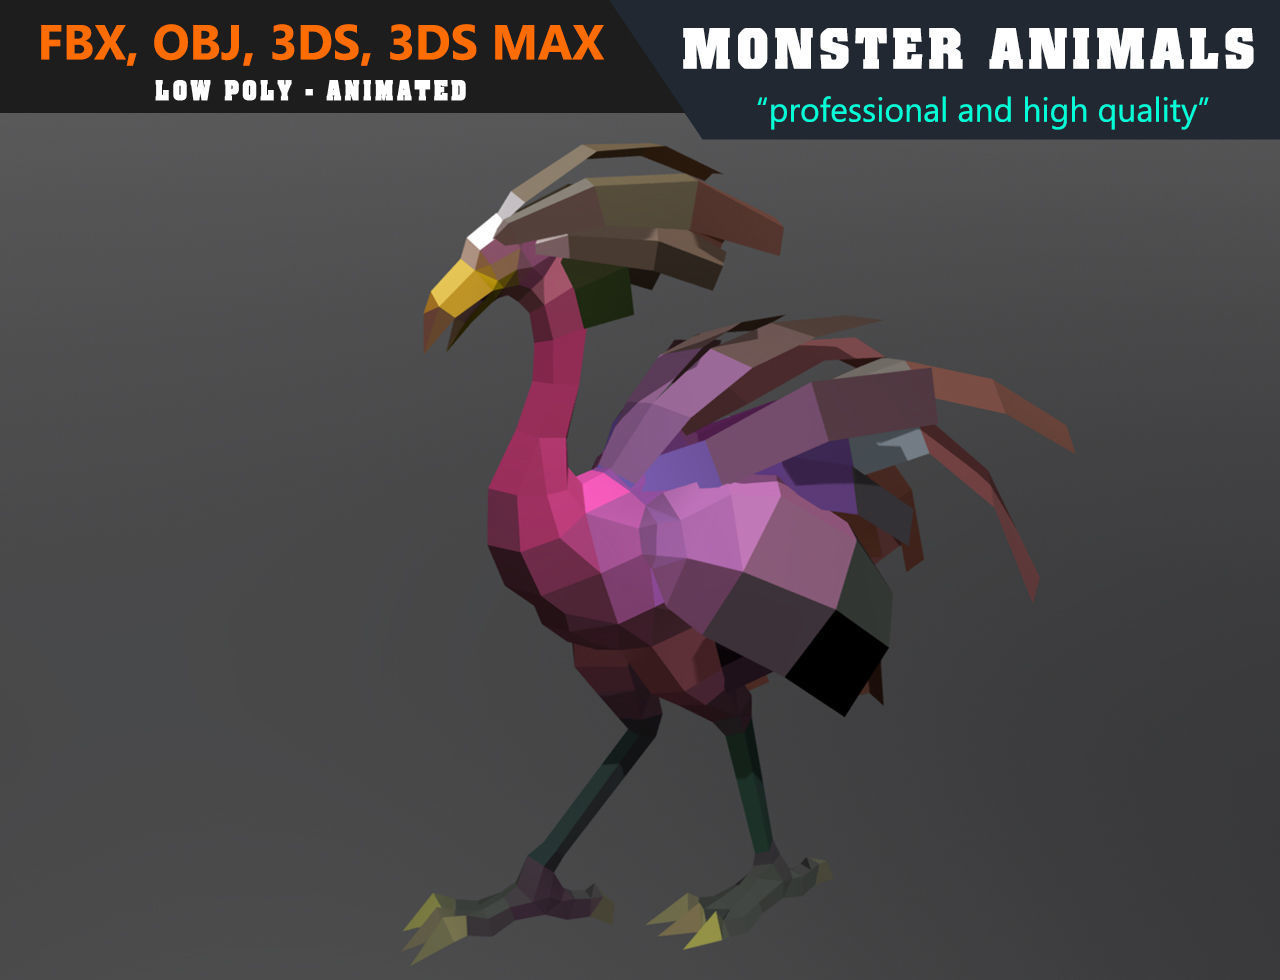 3d Models For Animation Low Poly Ostrich Cartoon Monster 3d Model Animated Game Ready 3d Model